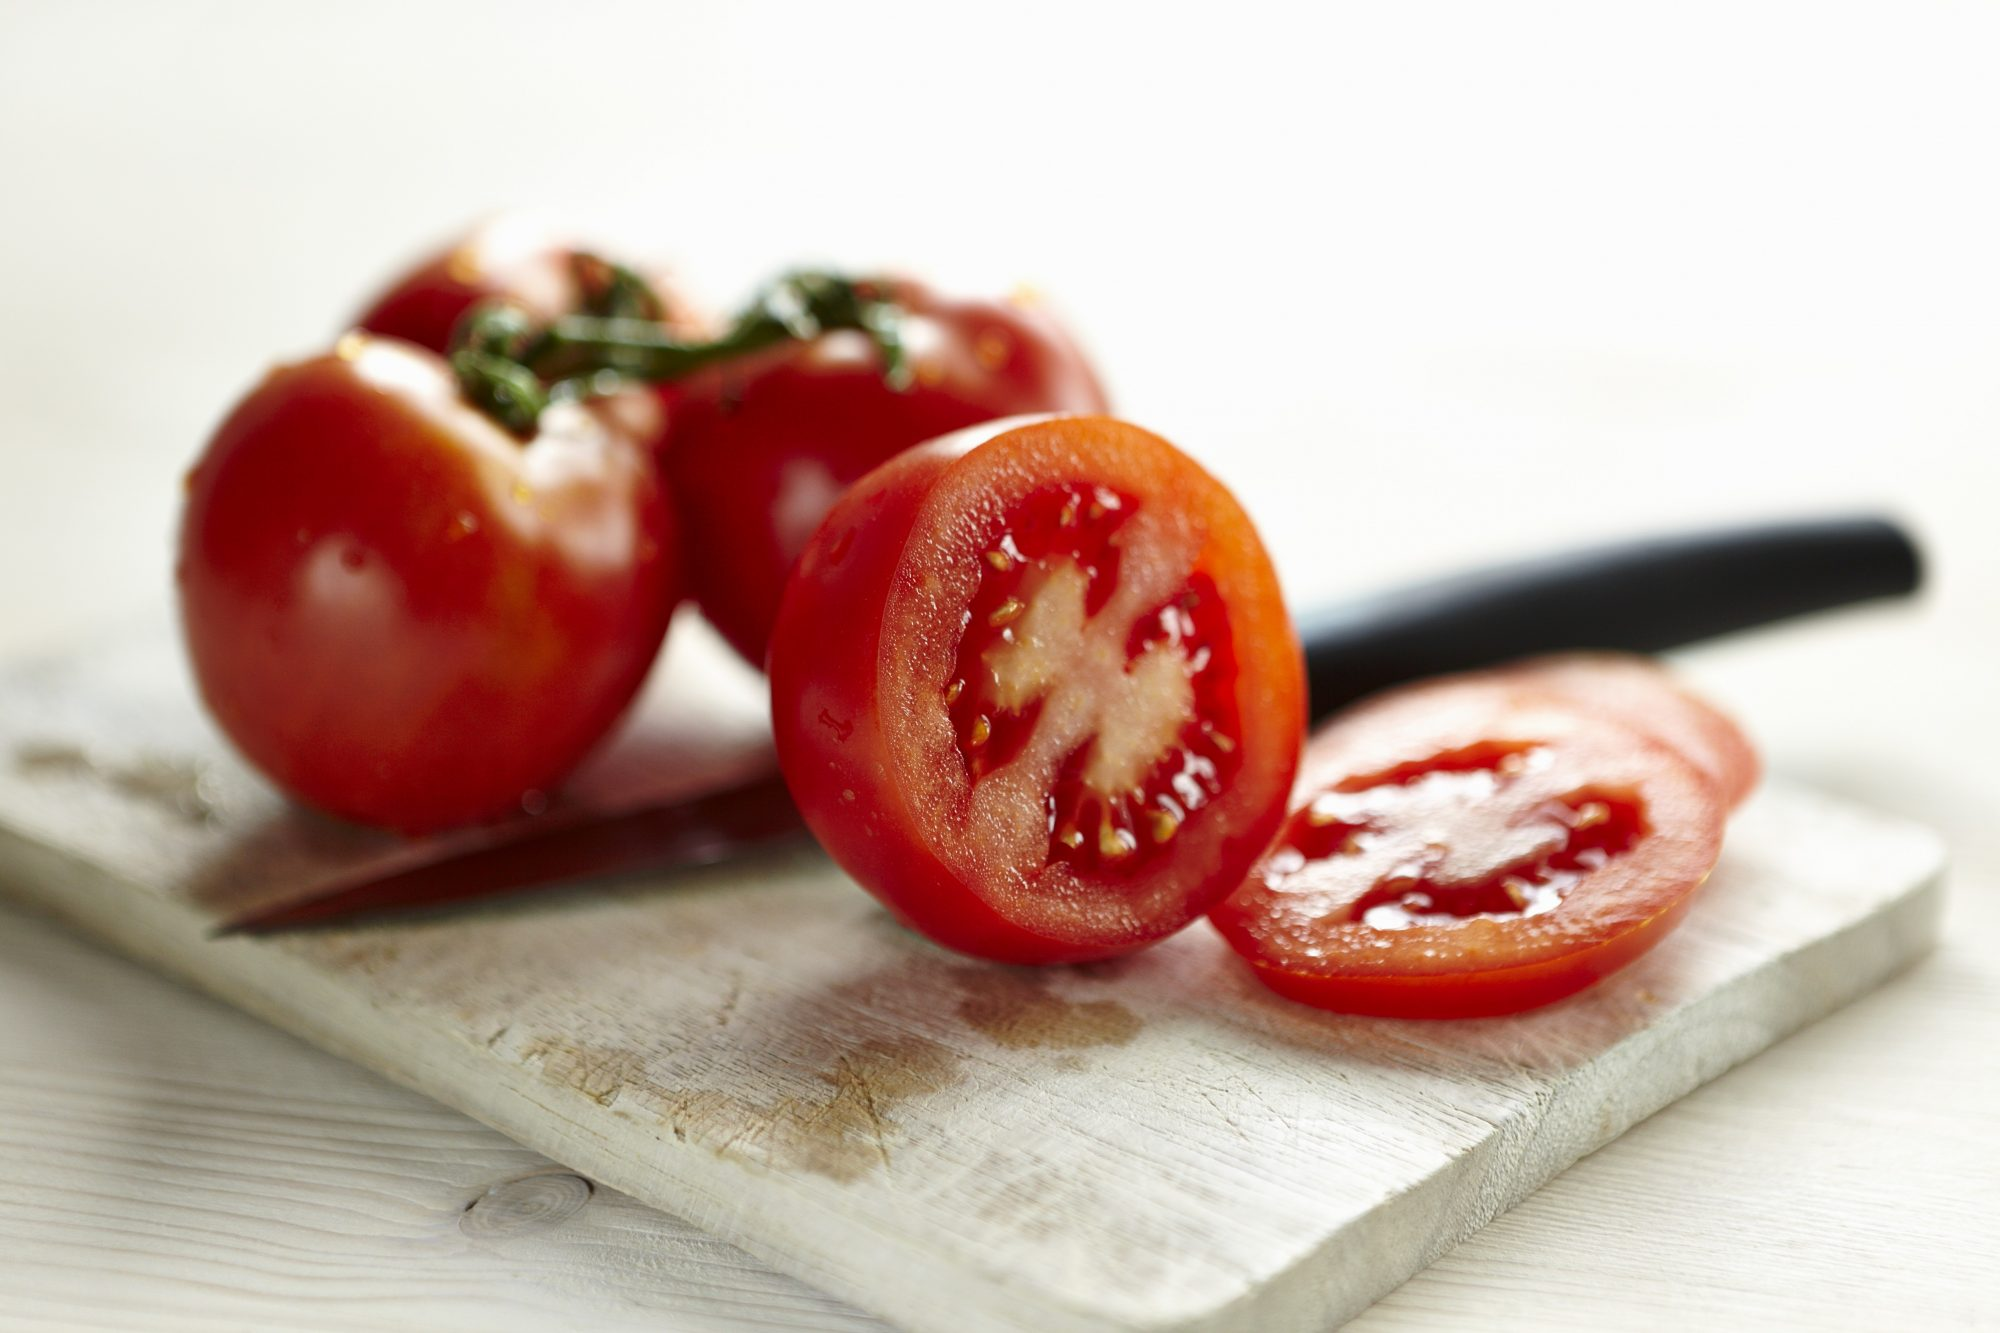 Sliced and Whole Tomatoes